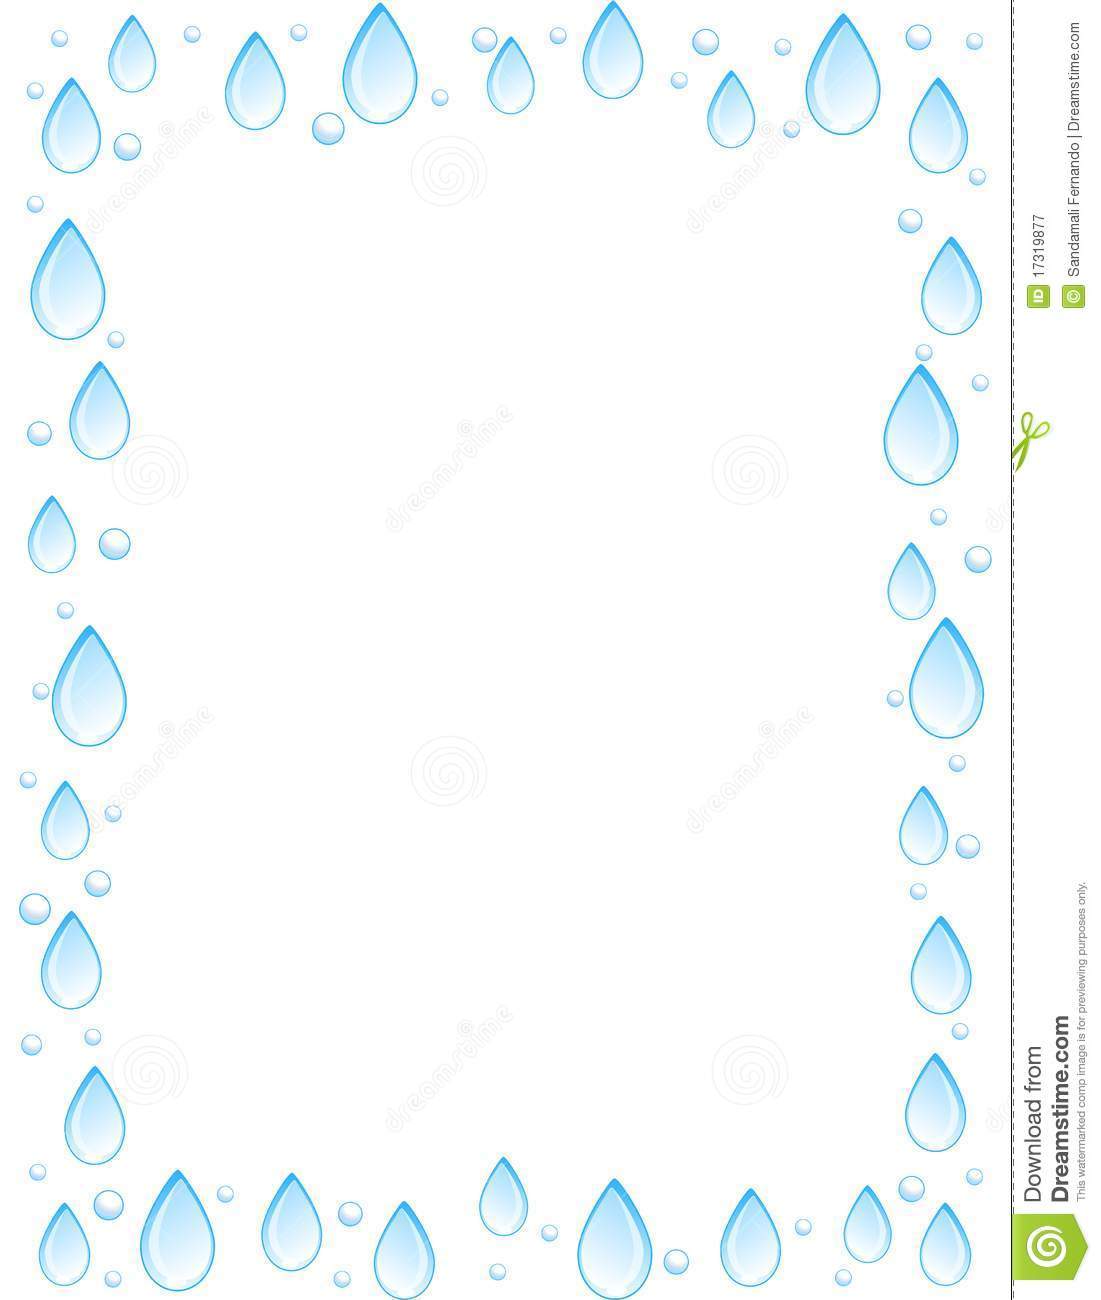 Water cycle clipart frame vector library stock Water cycle clipart frame - ClipartFest vector library stock